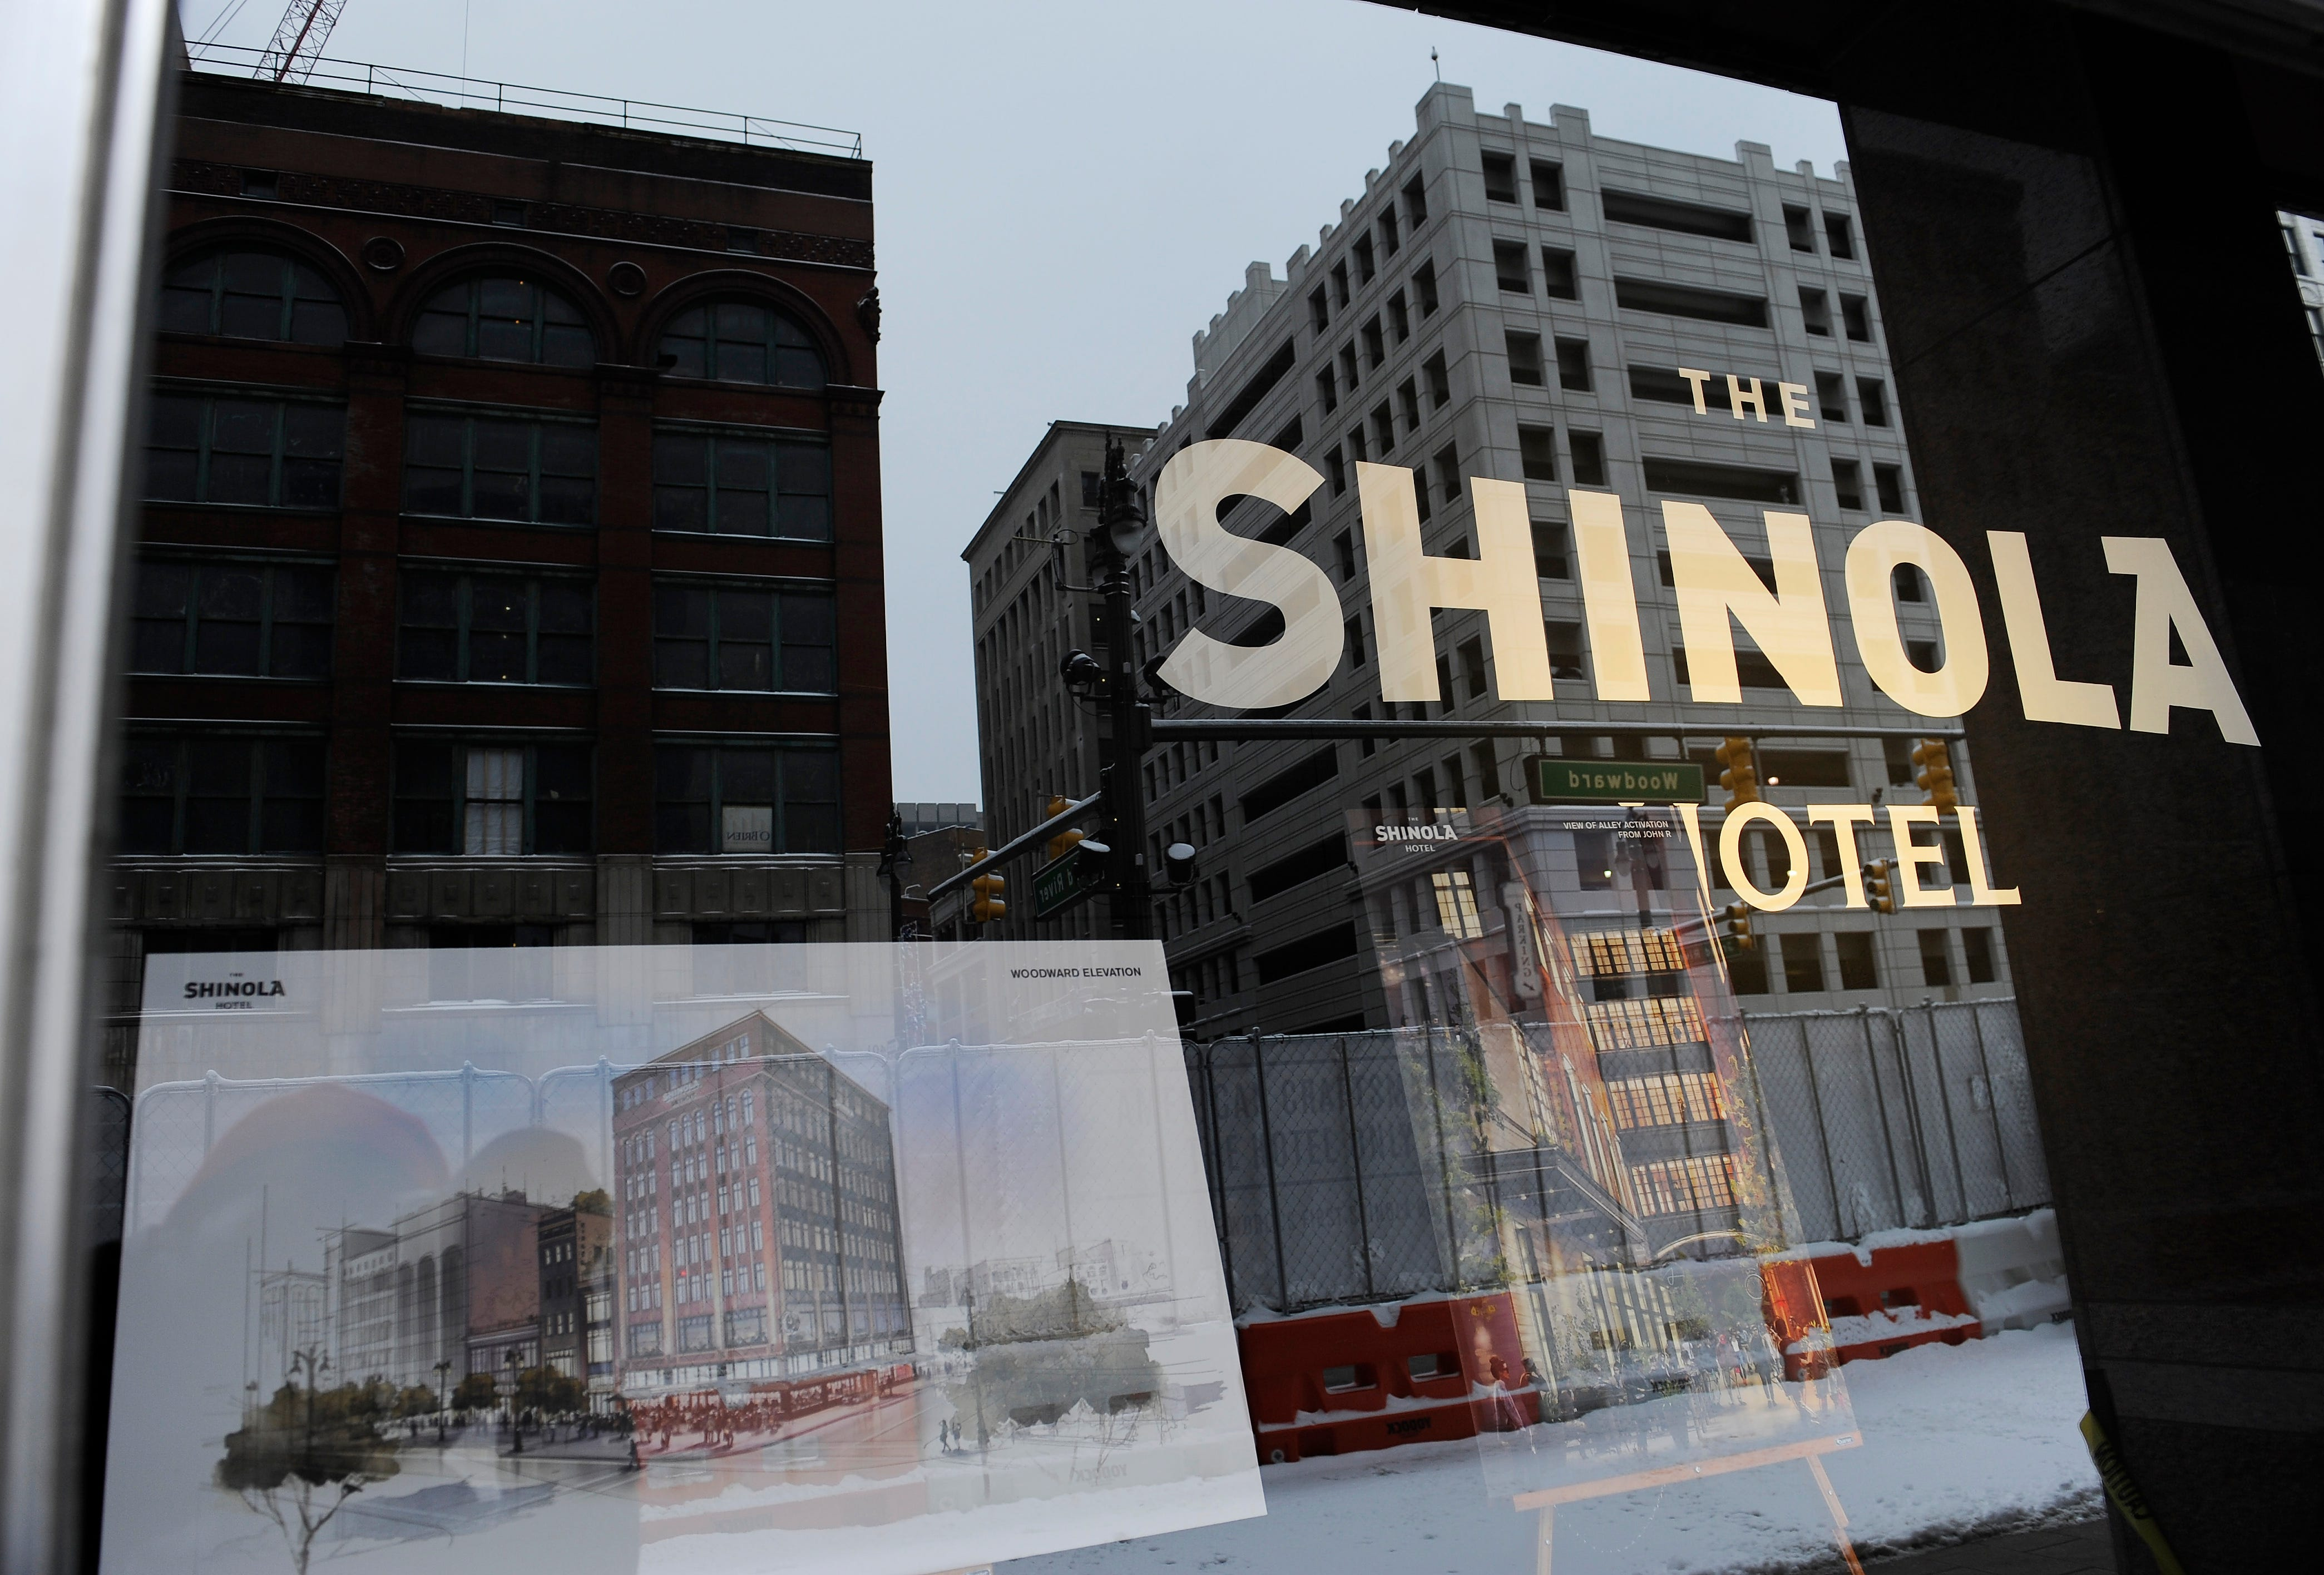 Local and international retailers coming to Detroit's Shinola Hotel